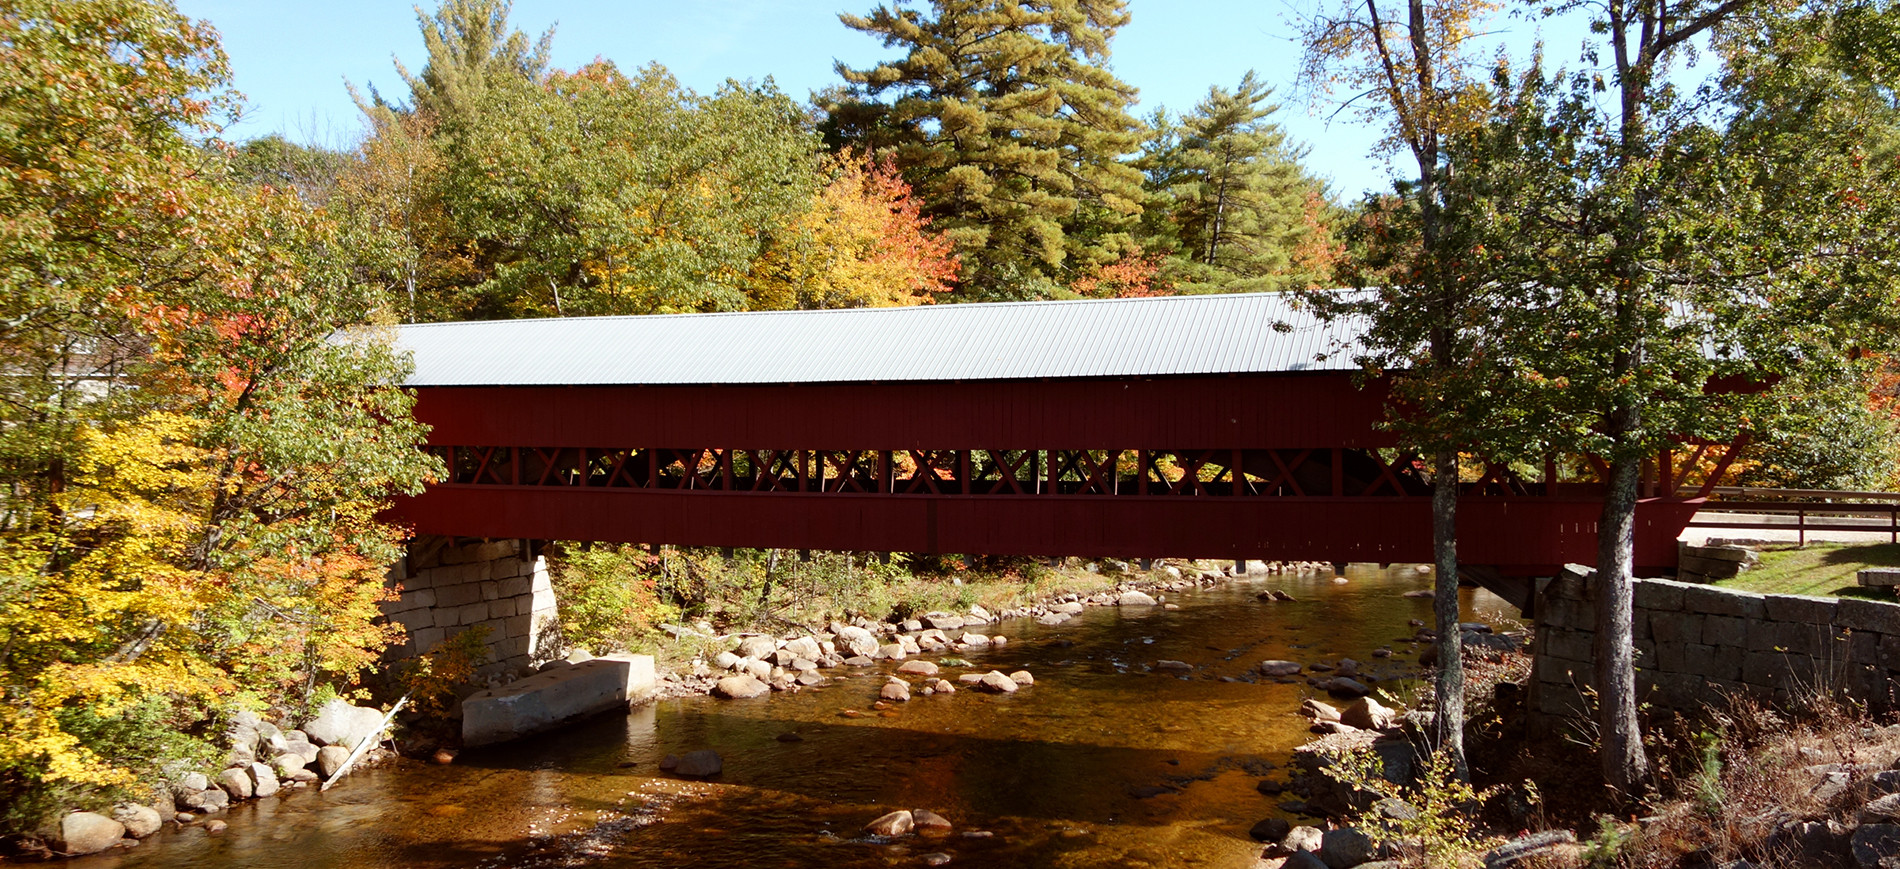 Covered Bridge in NH over river with foliage around it